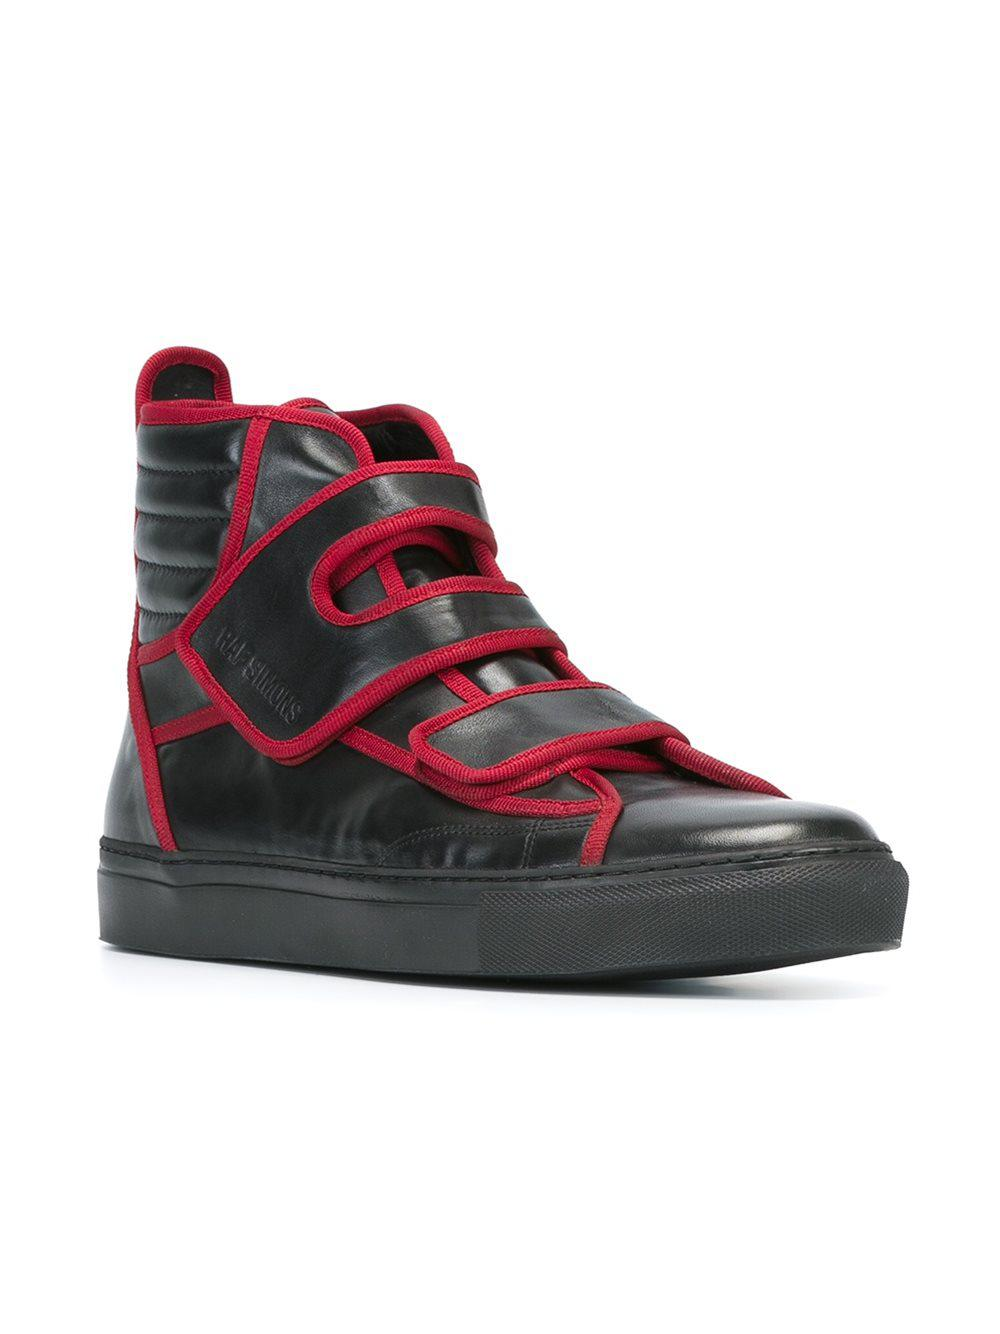 separation shoes 5a2f9 cf0fa Lyst - Raf Simons Trimmed High-Tops in Black for Men